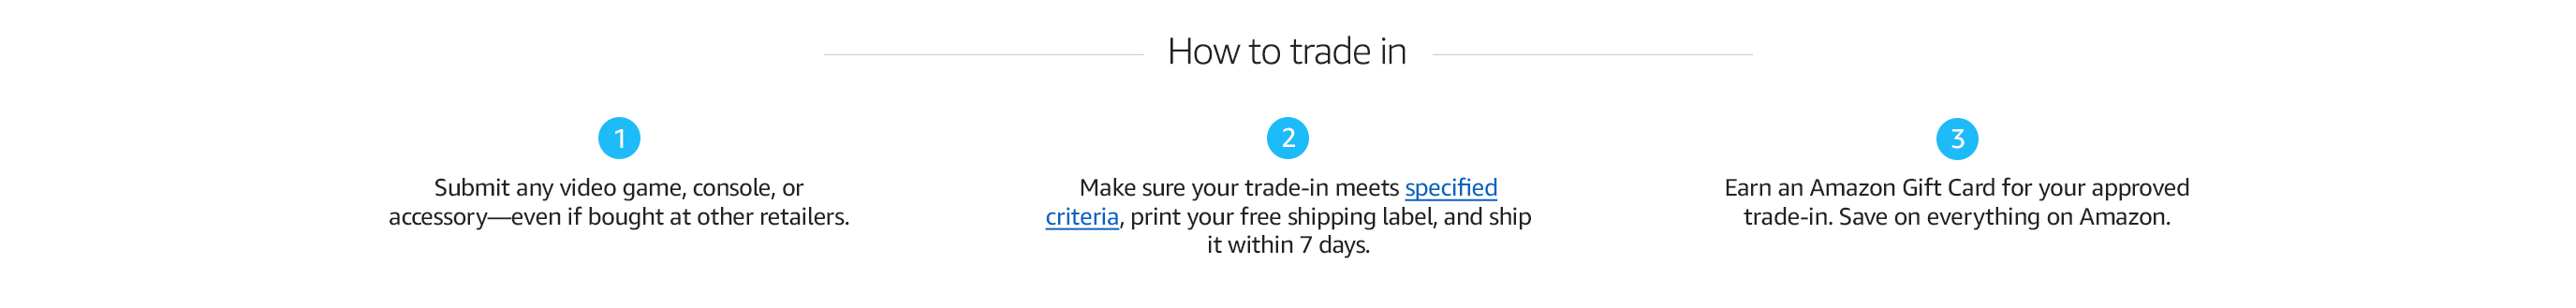 How to trade in